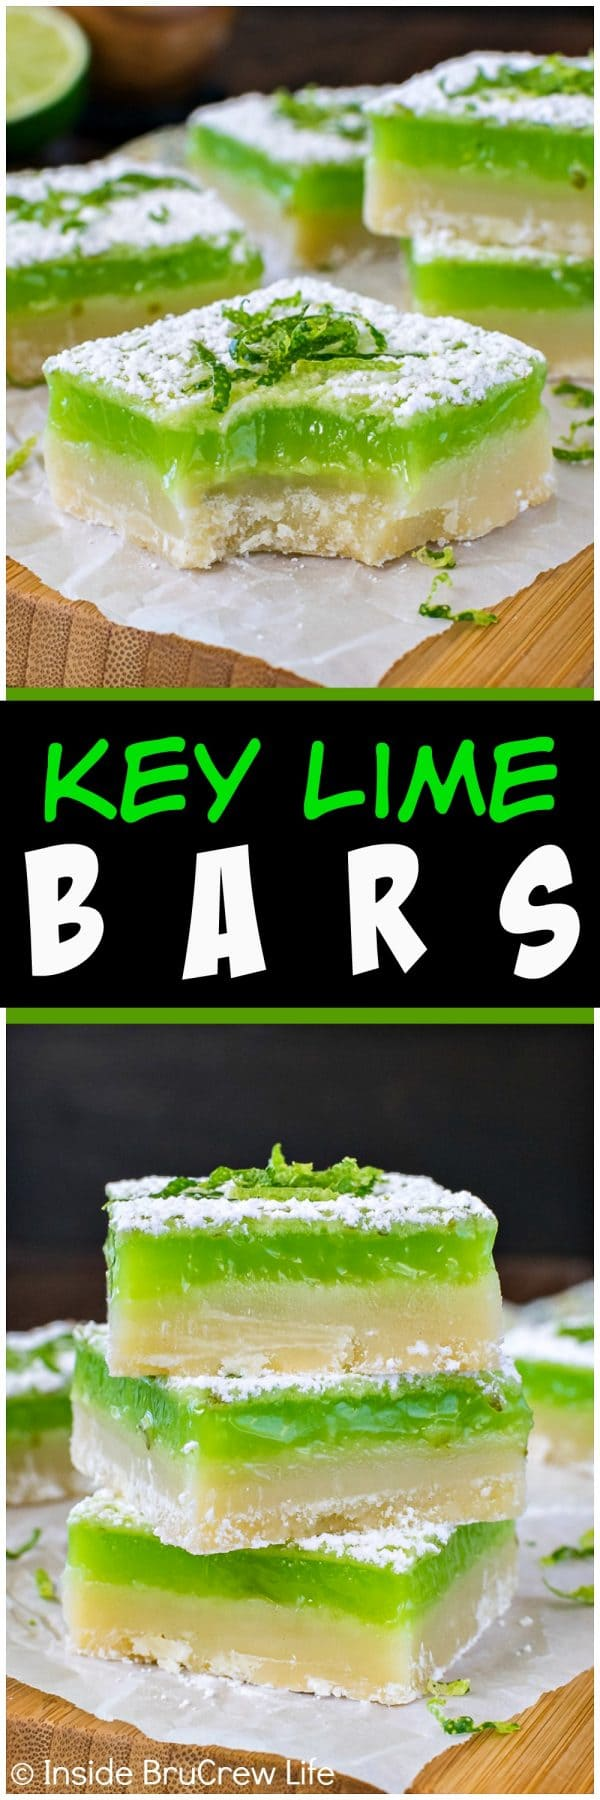 Key Lime Bars - a sweet cookie crust topped with a bright green tart key lime filling makes a great summer dessert. Easy recipe for picnics and parties!